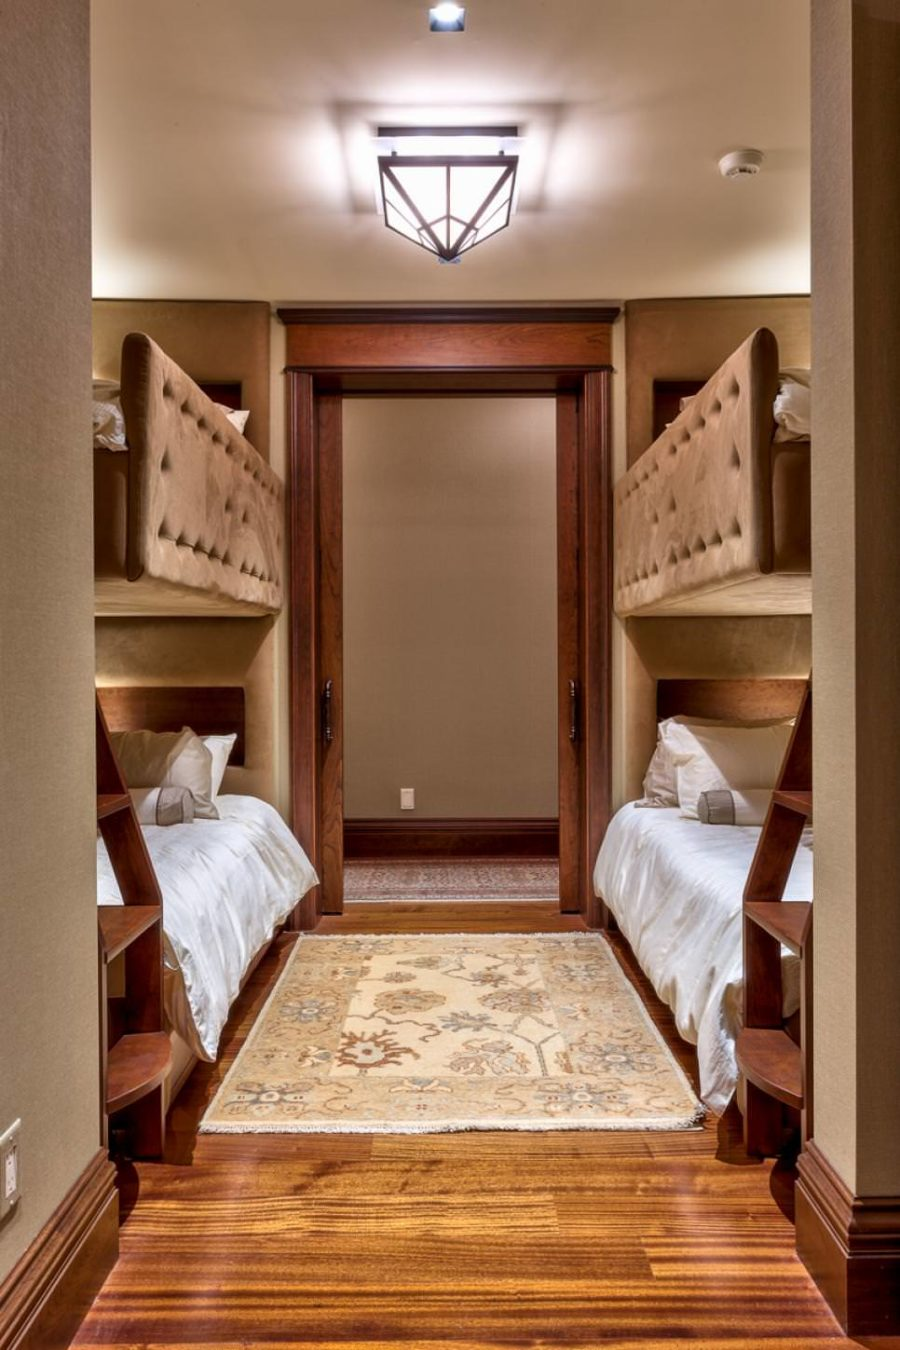 Fancy View in gallery Even your bunk beds